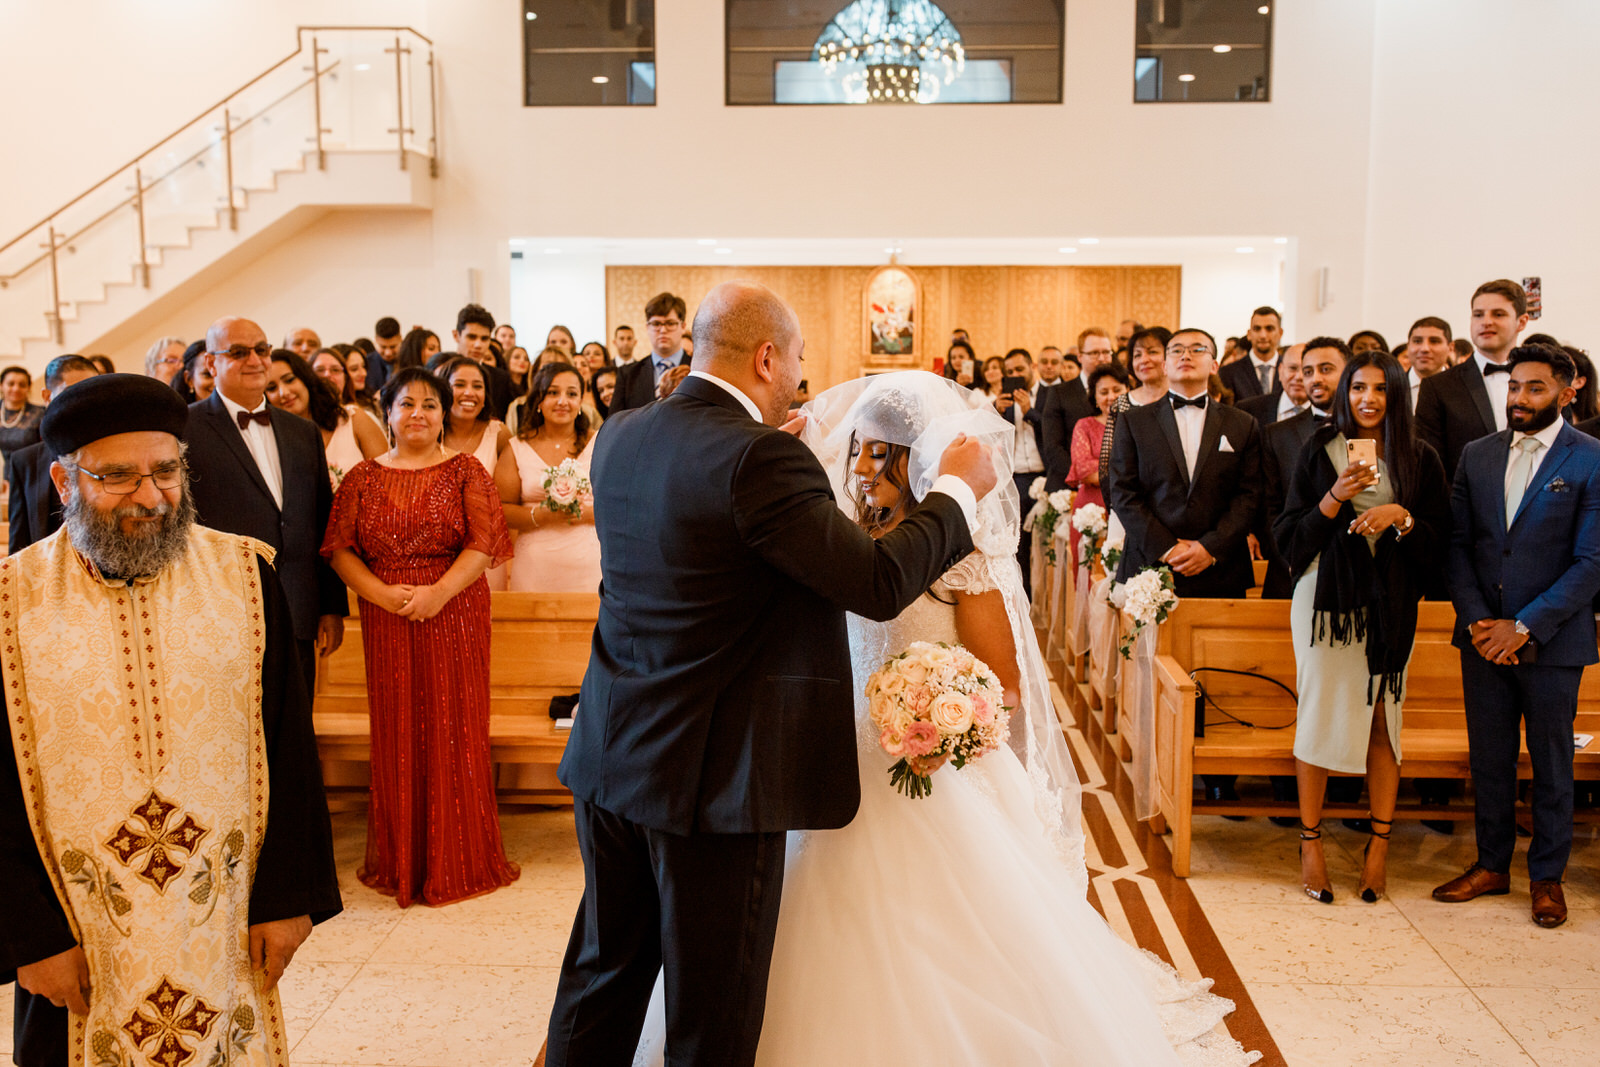 groom lifting veil of bride at wedding